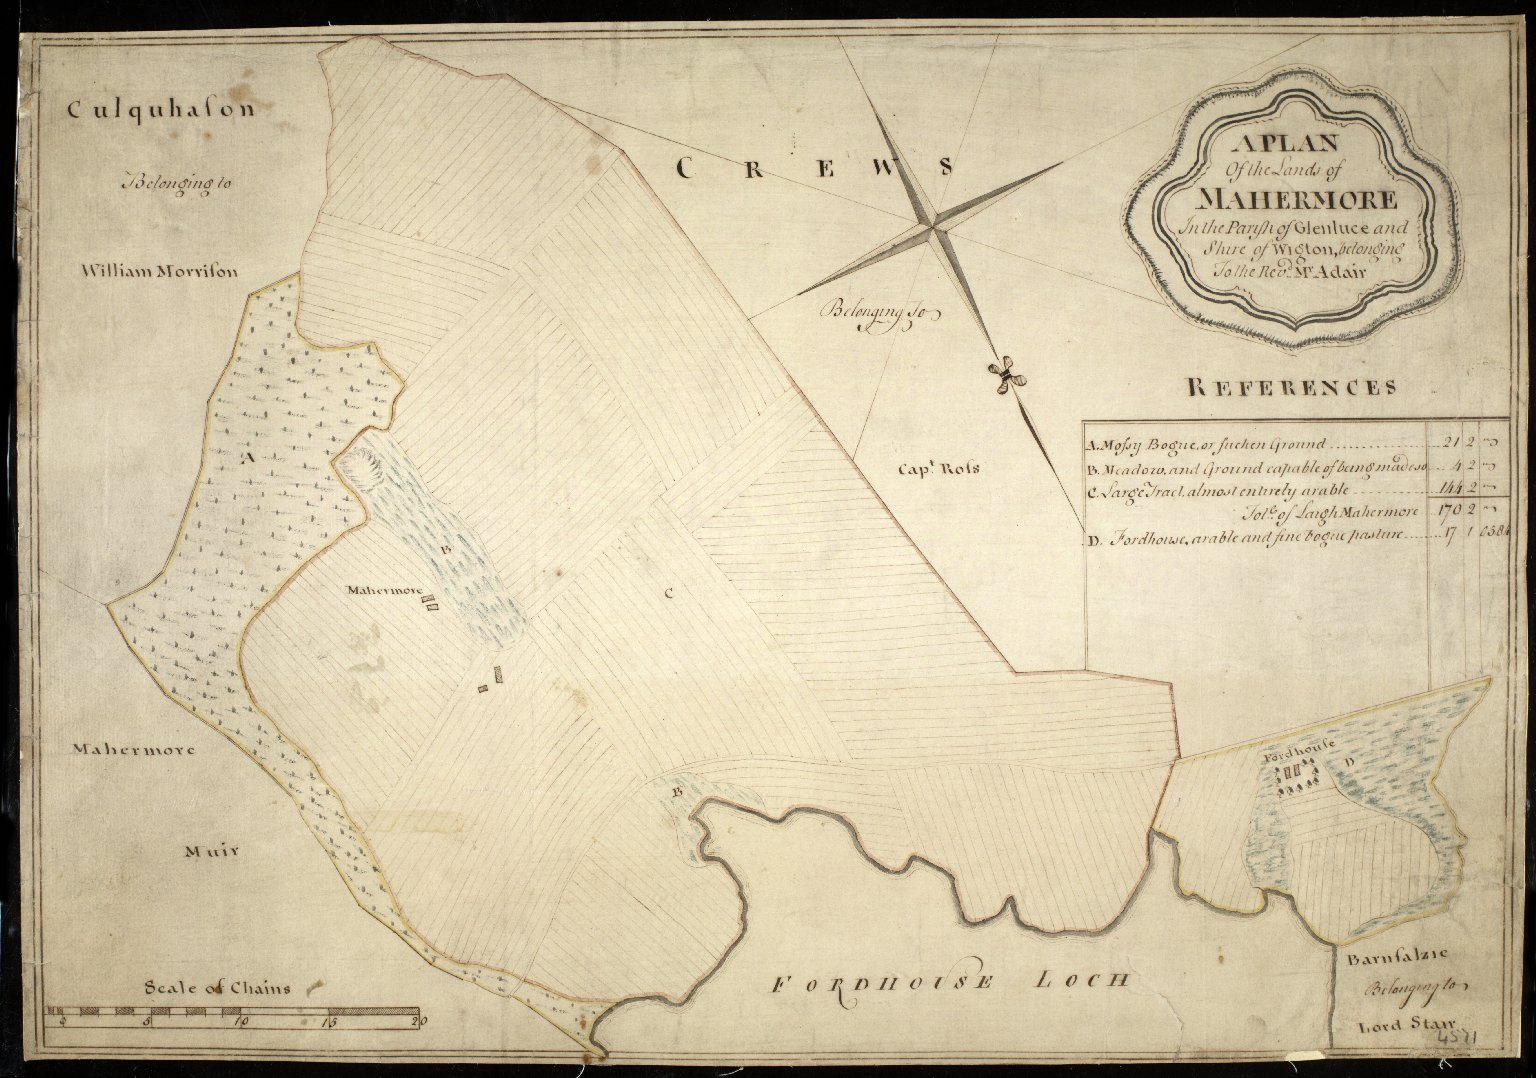 A Plan of the Lands of Mahermore In the Parish of Glenluce and Shire of Wigton, belonging to the Revd. Mr. Adair [1 of 1]